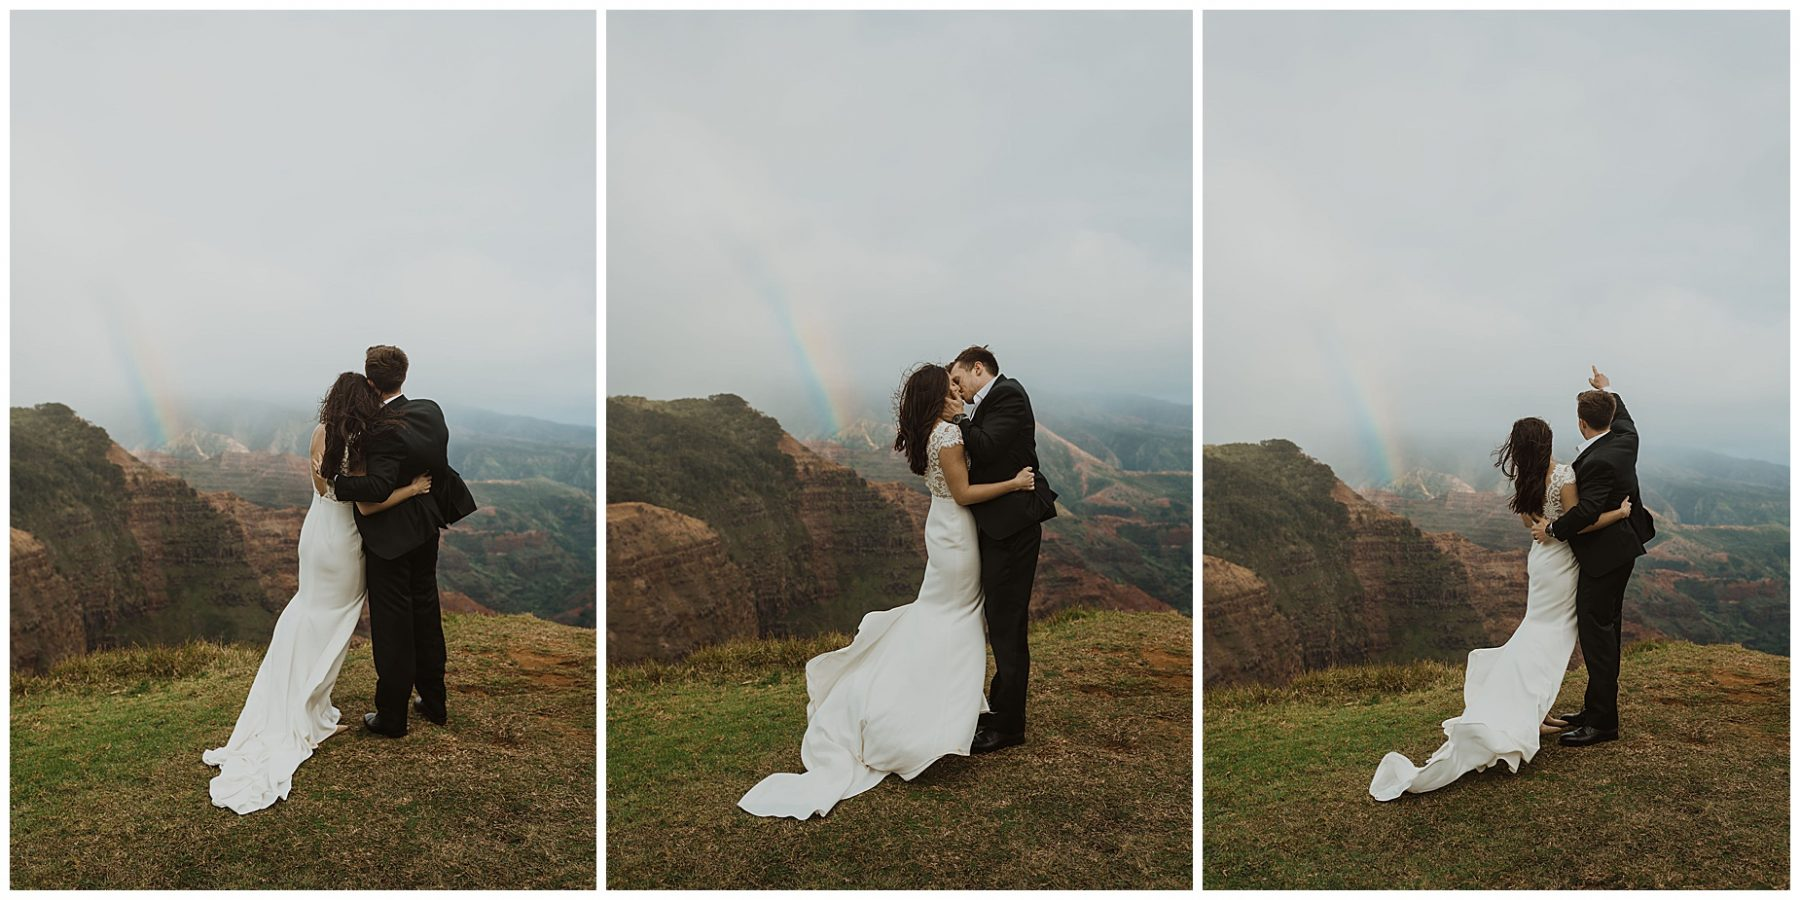 bride and groom exchanging vows during their elopement on the cliffs of Waimea Canyon in Kauai, Hawaii